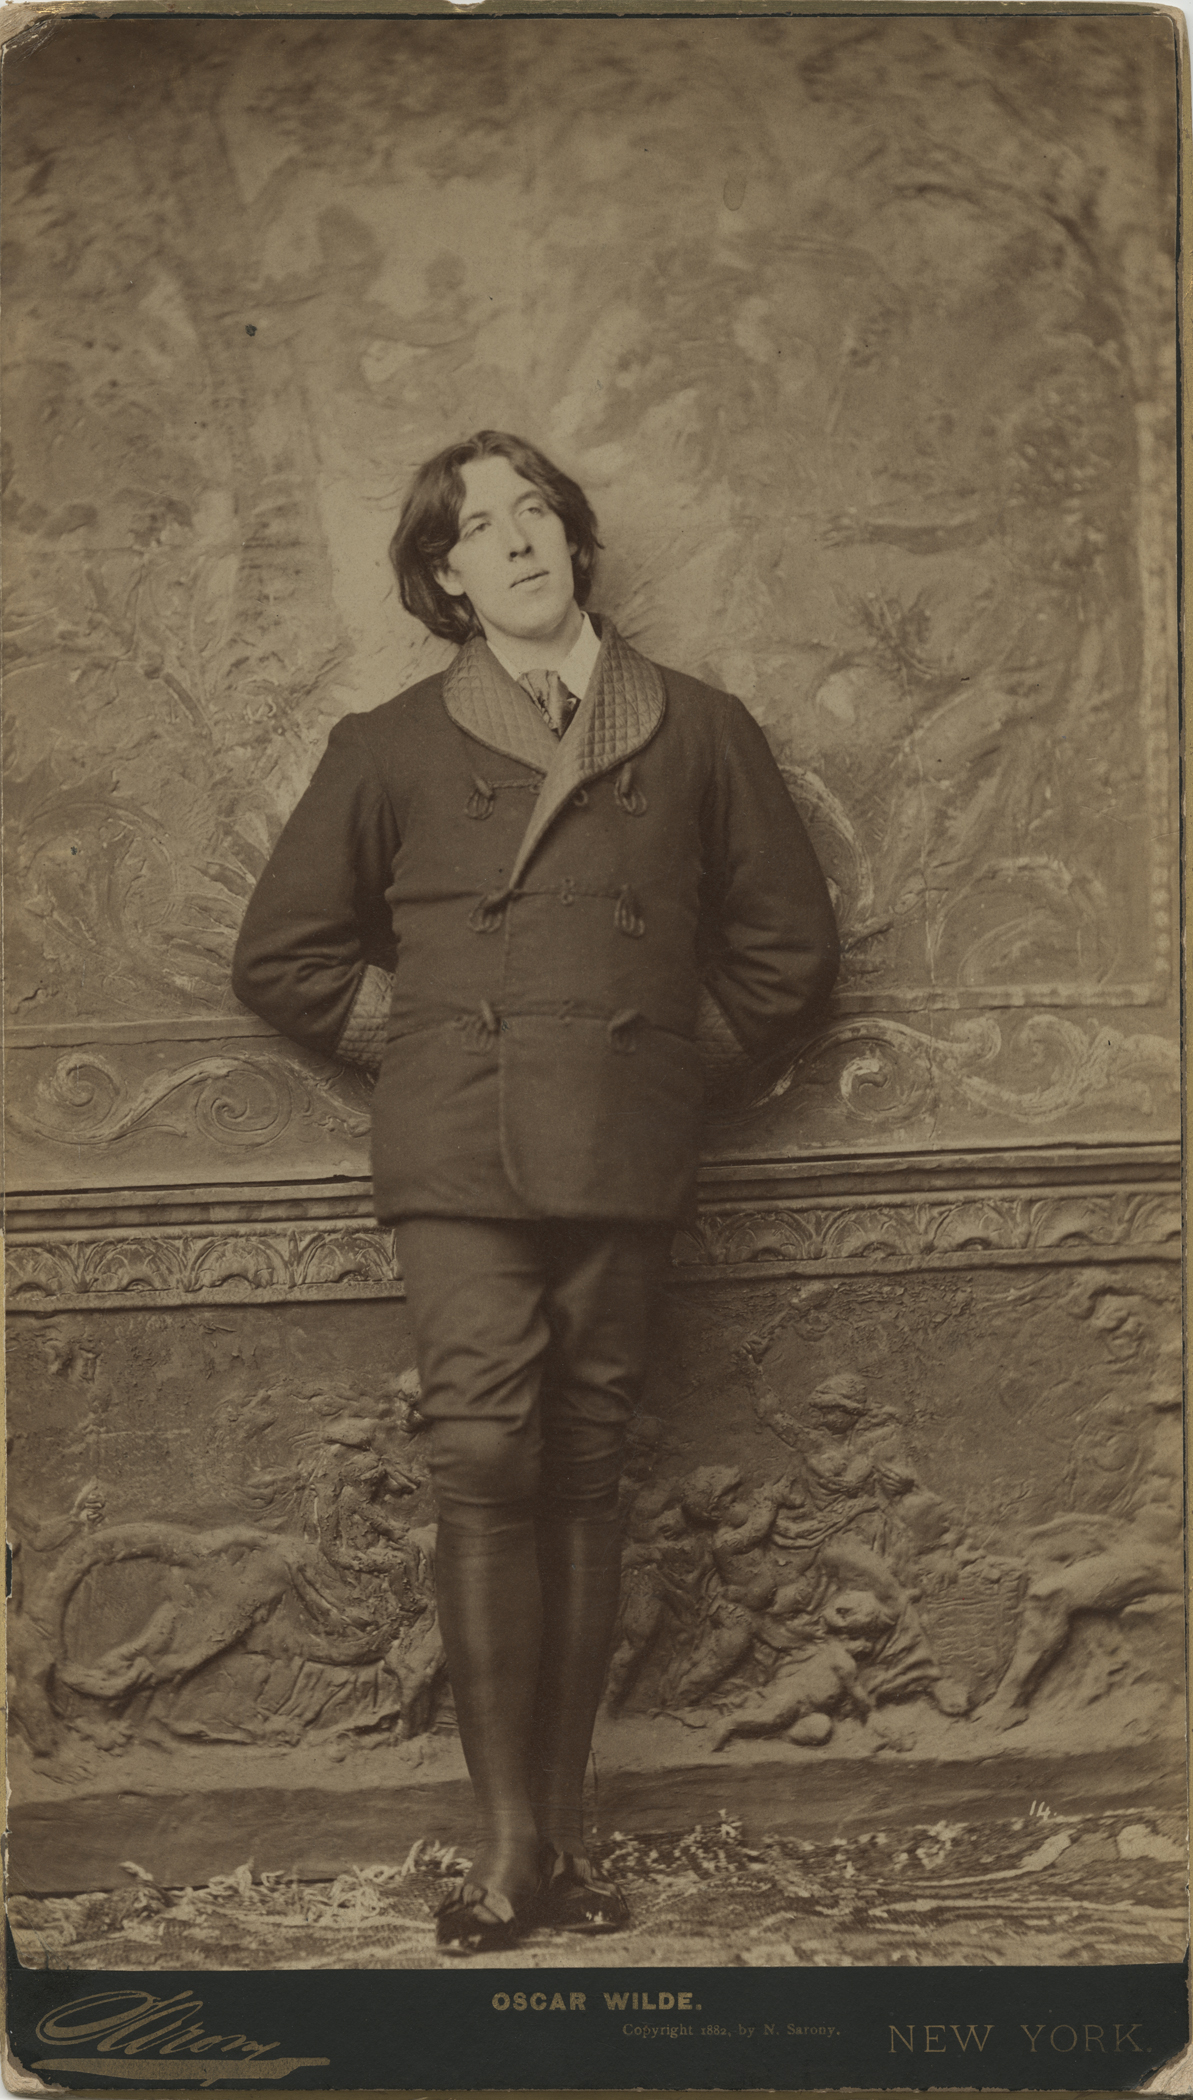 From the Outside In:  Napoleon Sarony's Portrait of Oscar Wilde, 1882